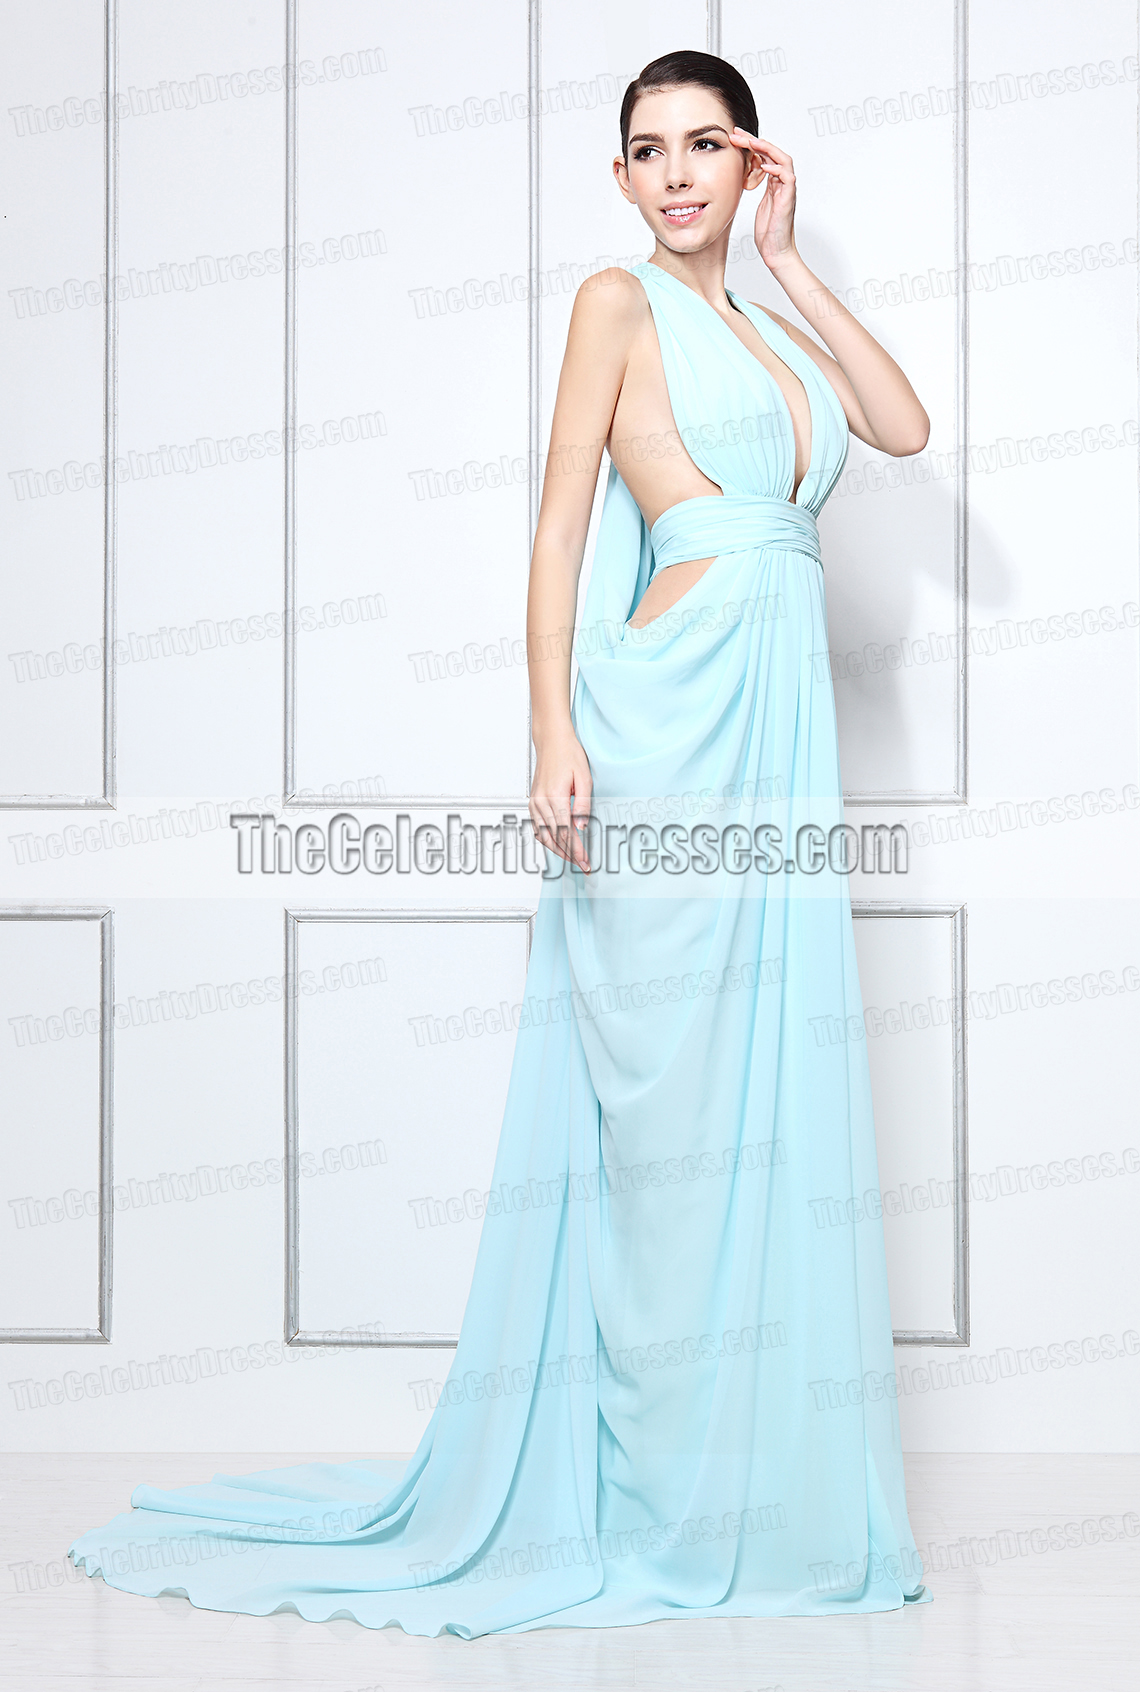 Miranda Kerr Light Blue Halter Prom Evening Dress 2012 Women of ...